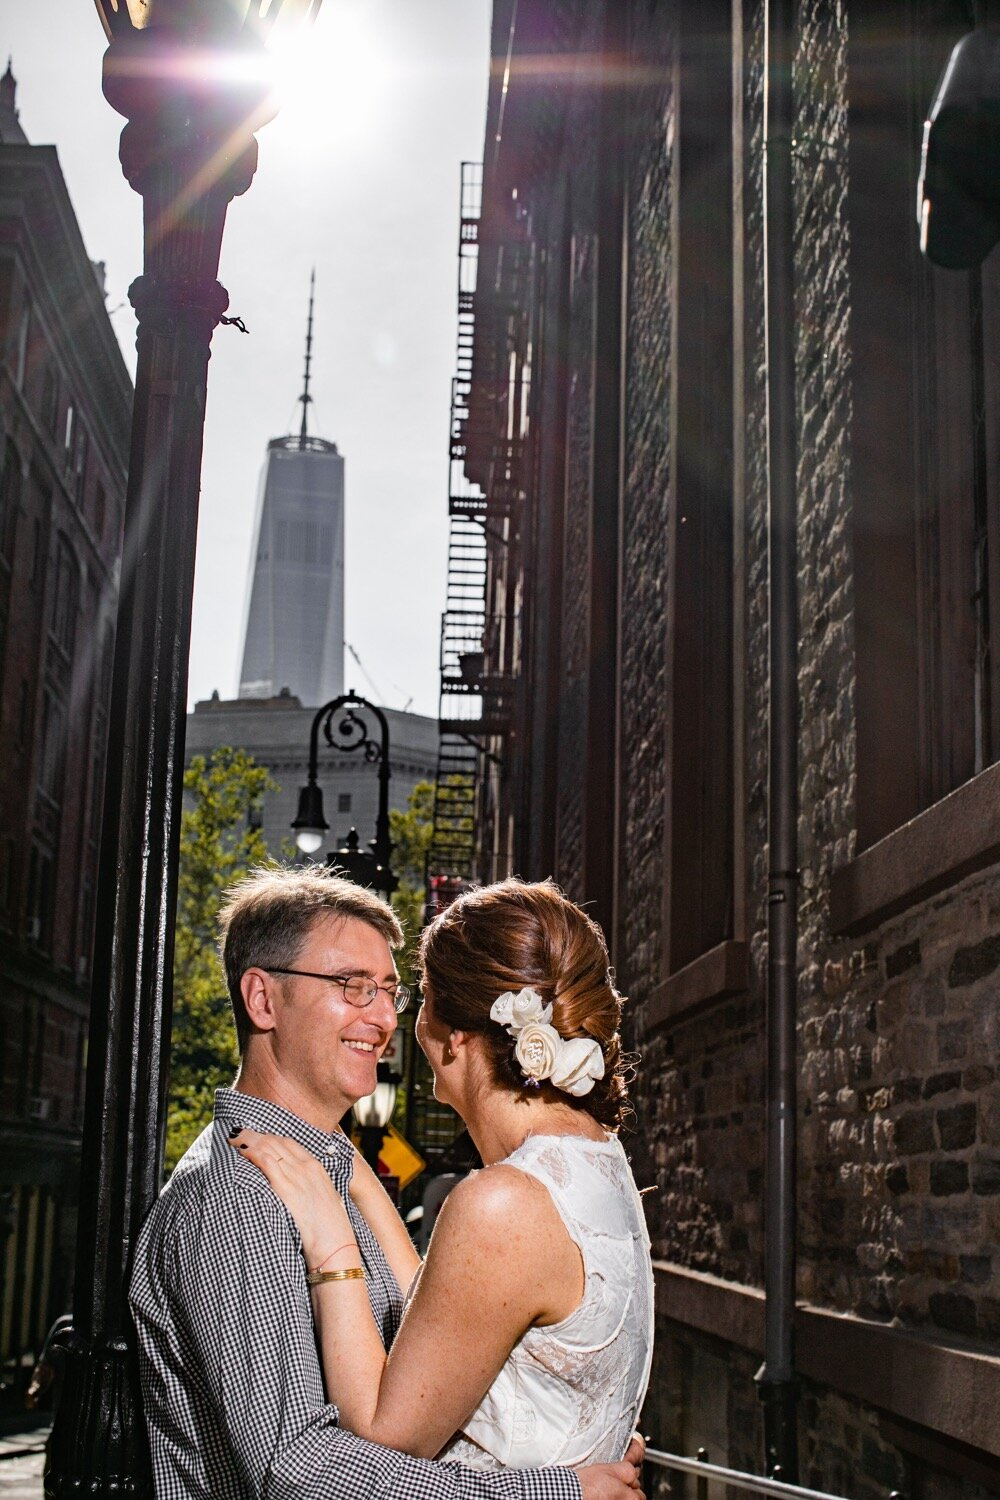 Wedding photos in downtown Manhattan. The World Trade Center can be seen in the background.